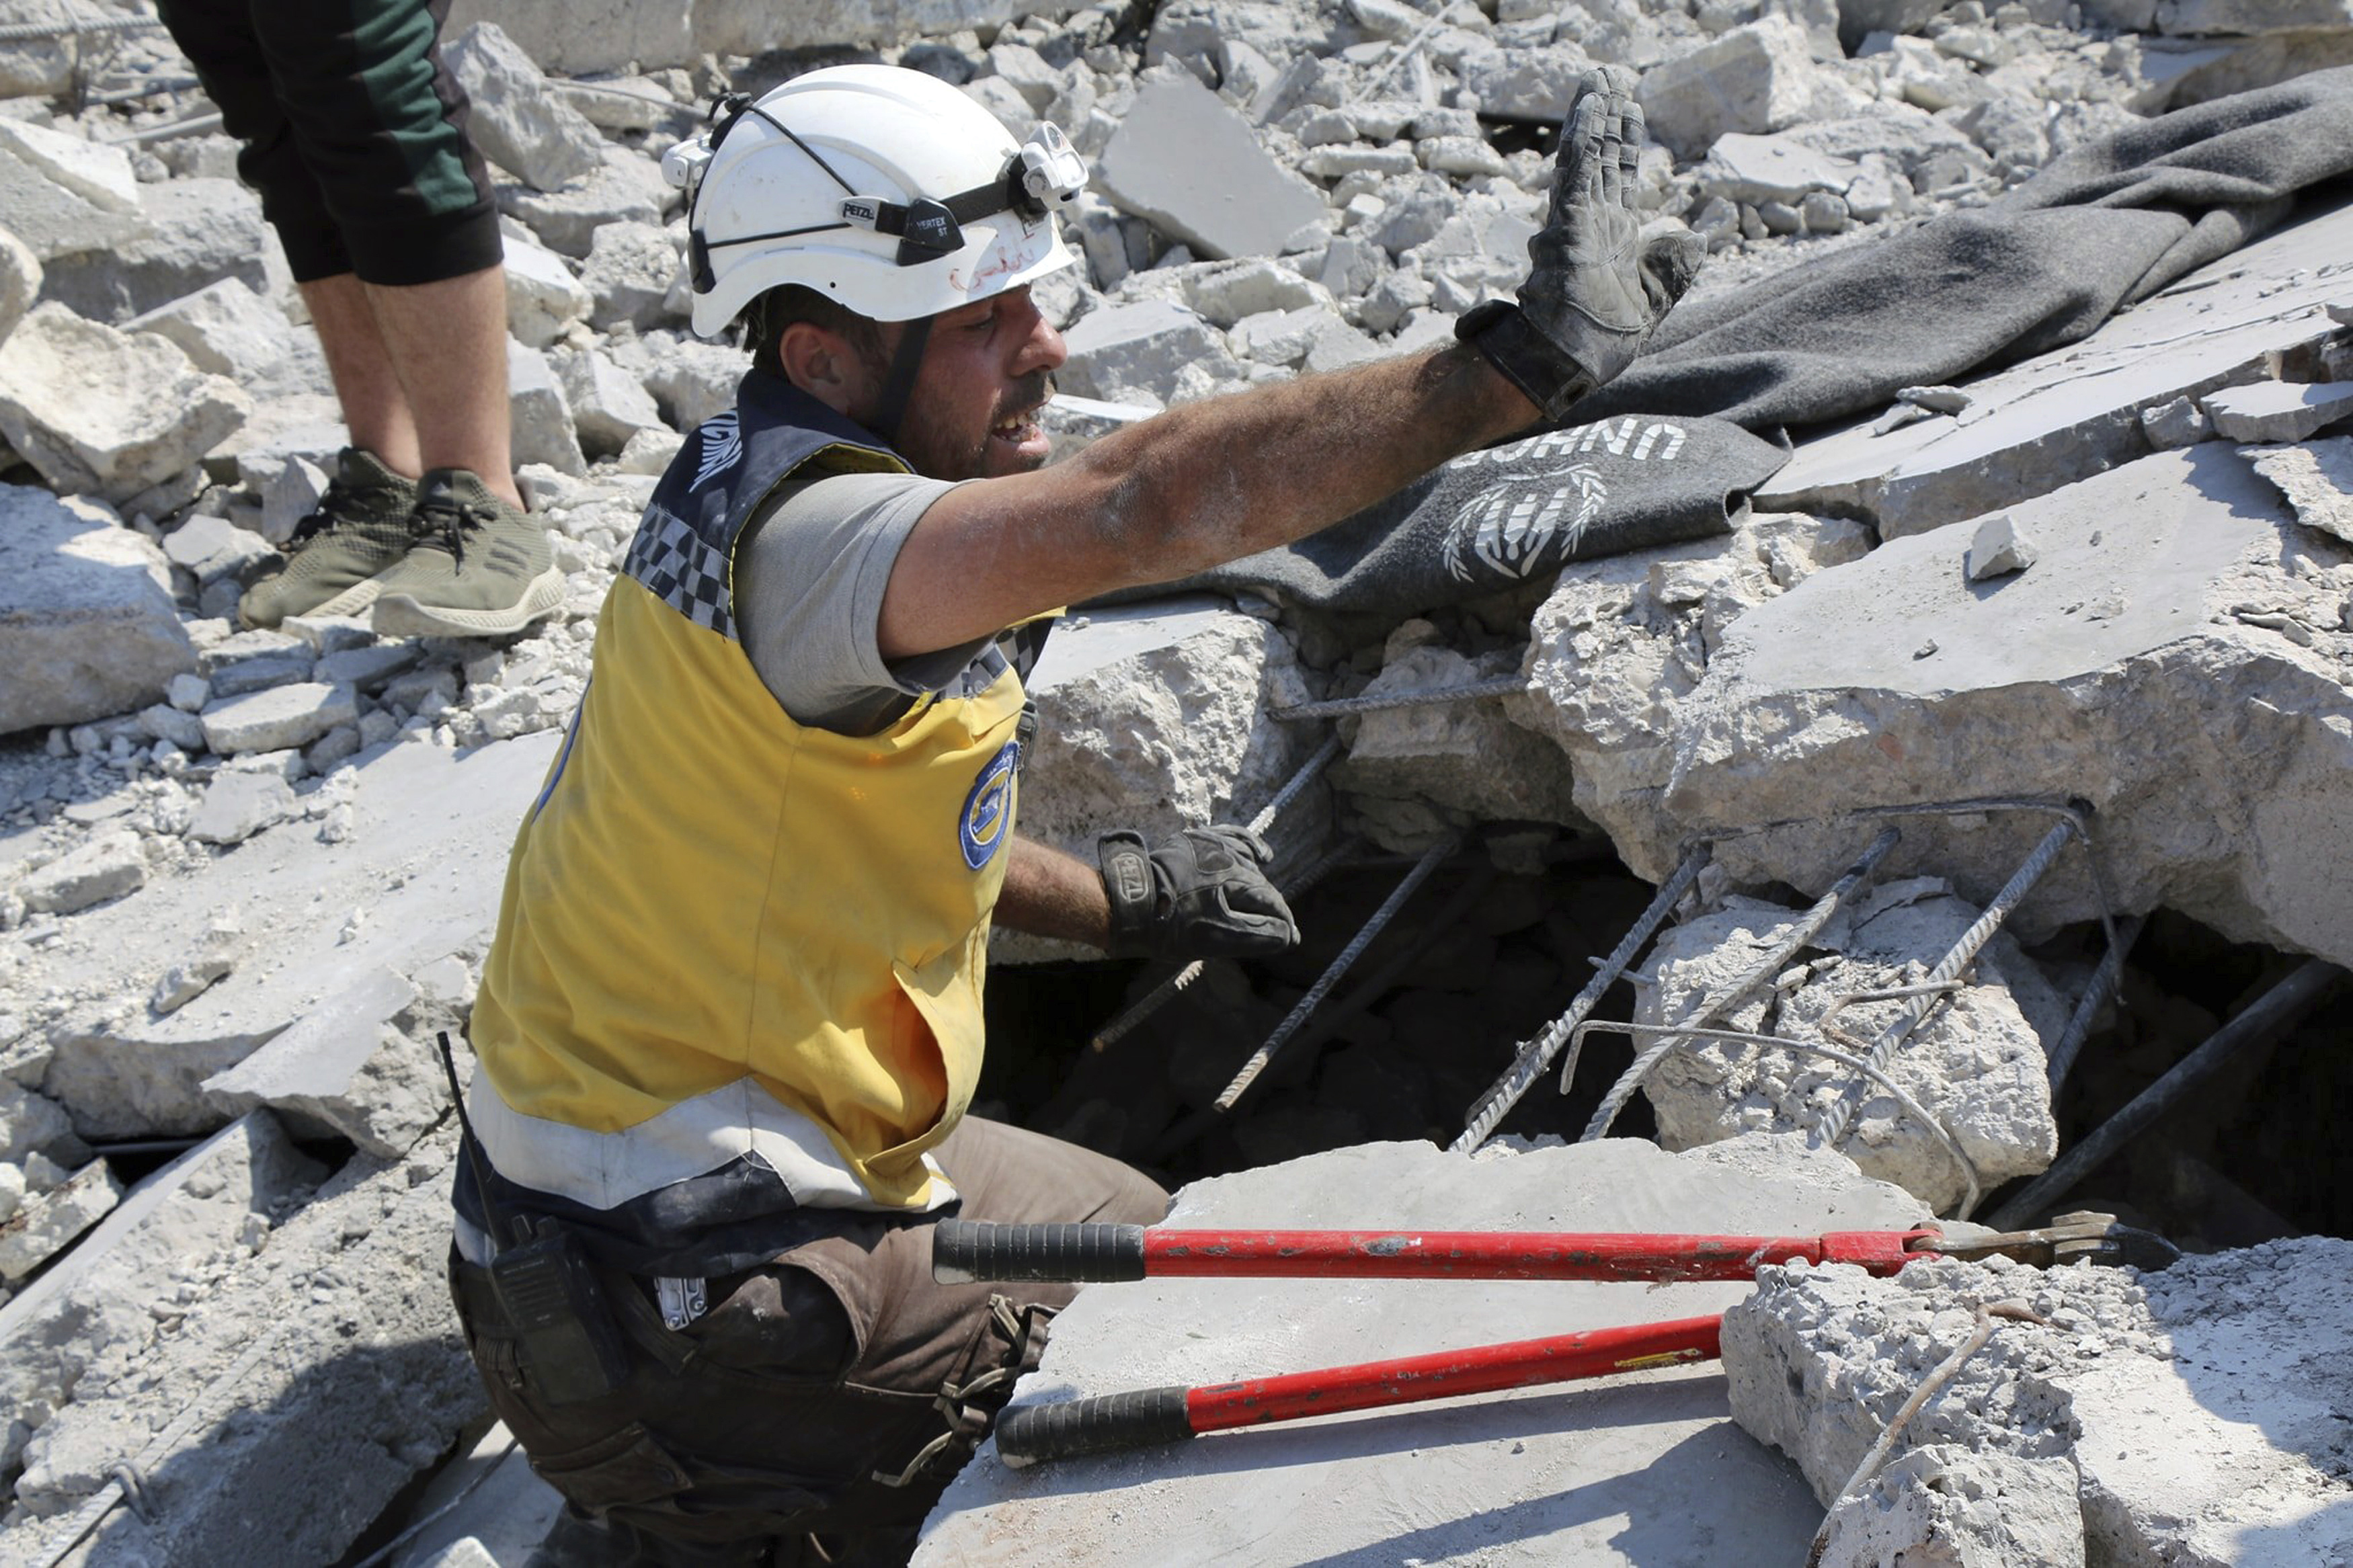 Airstrikes in Syrian rebel stronghold kills family of 7